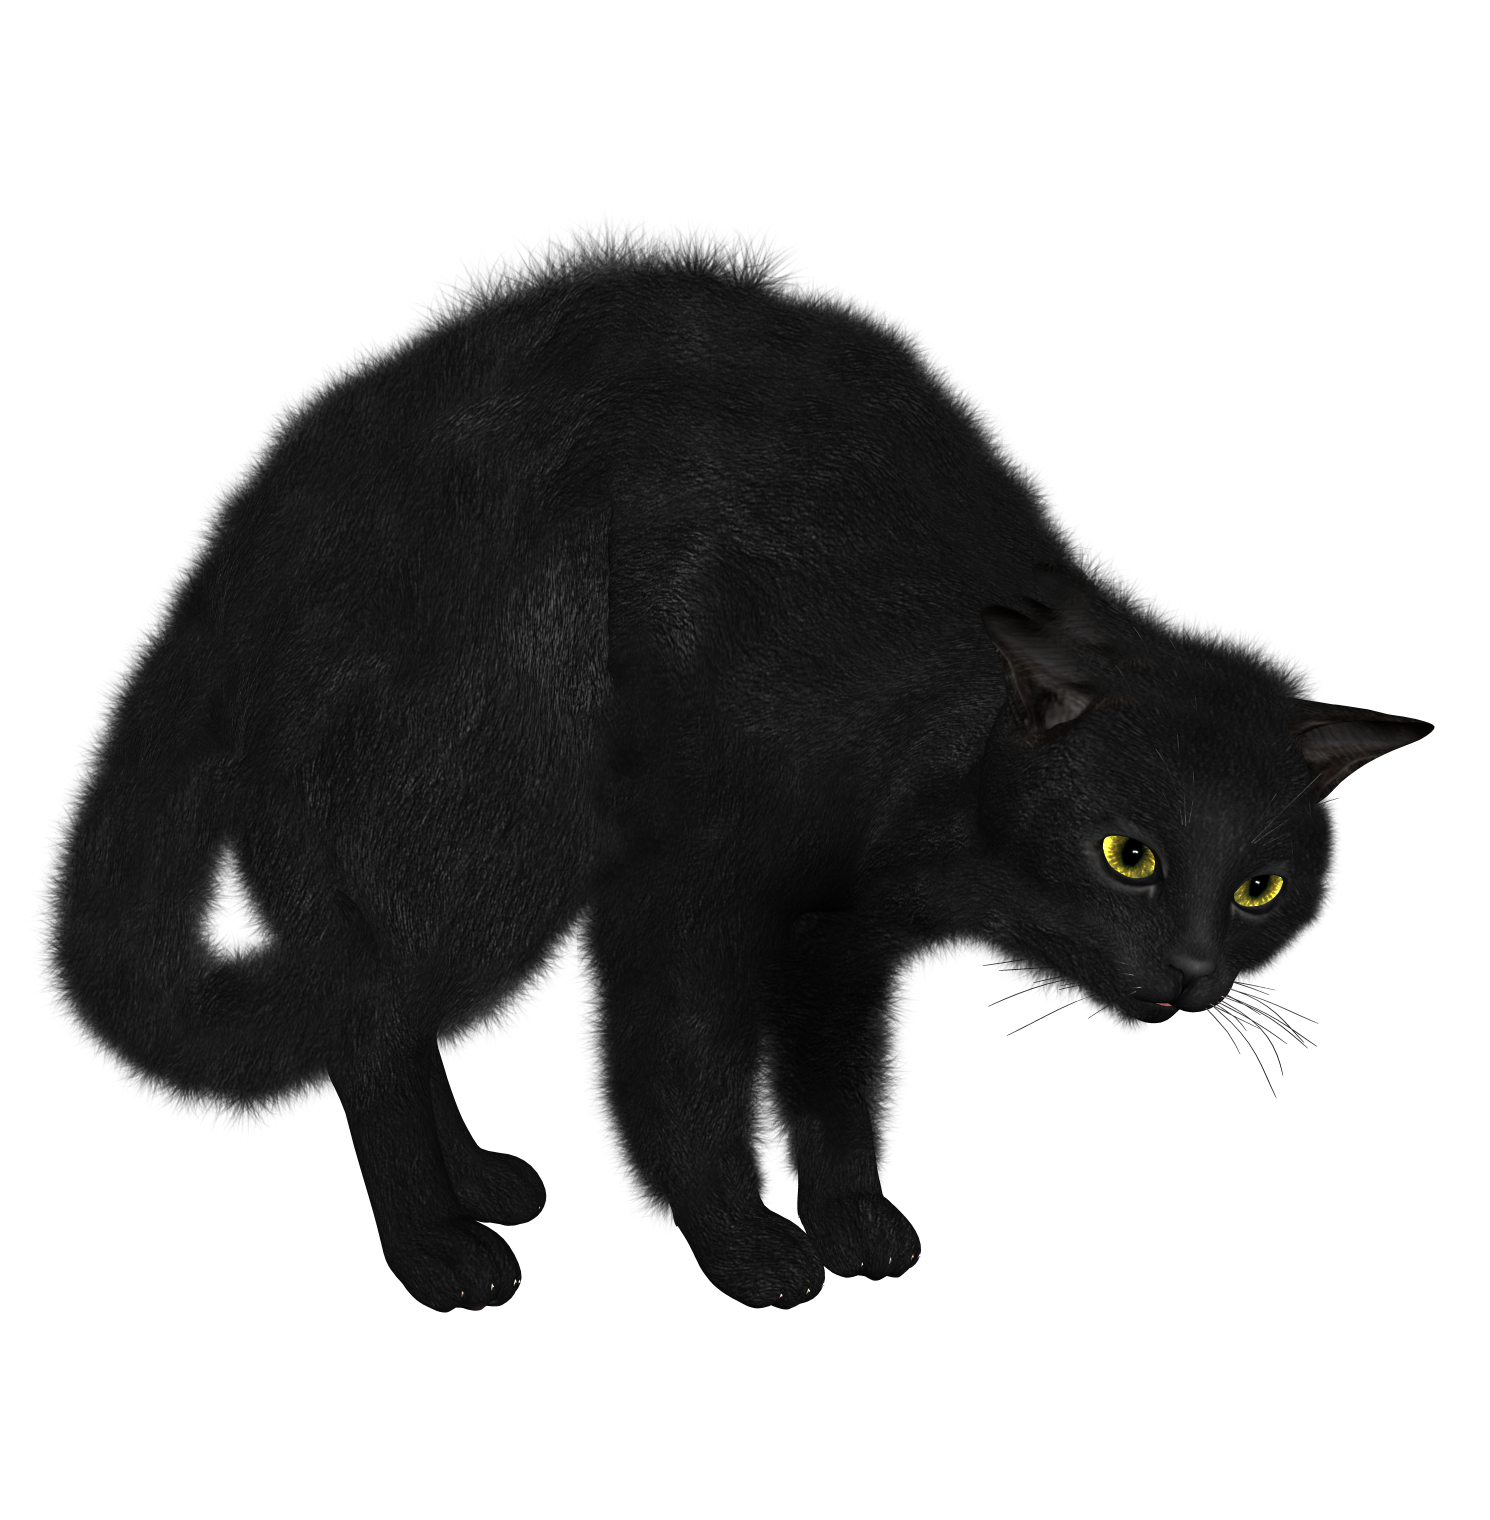 PNG Black Cat Picture